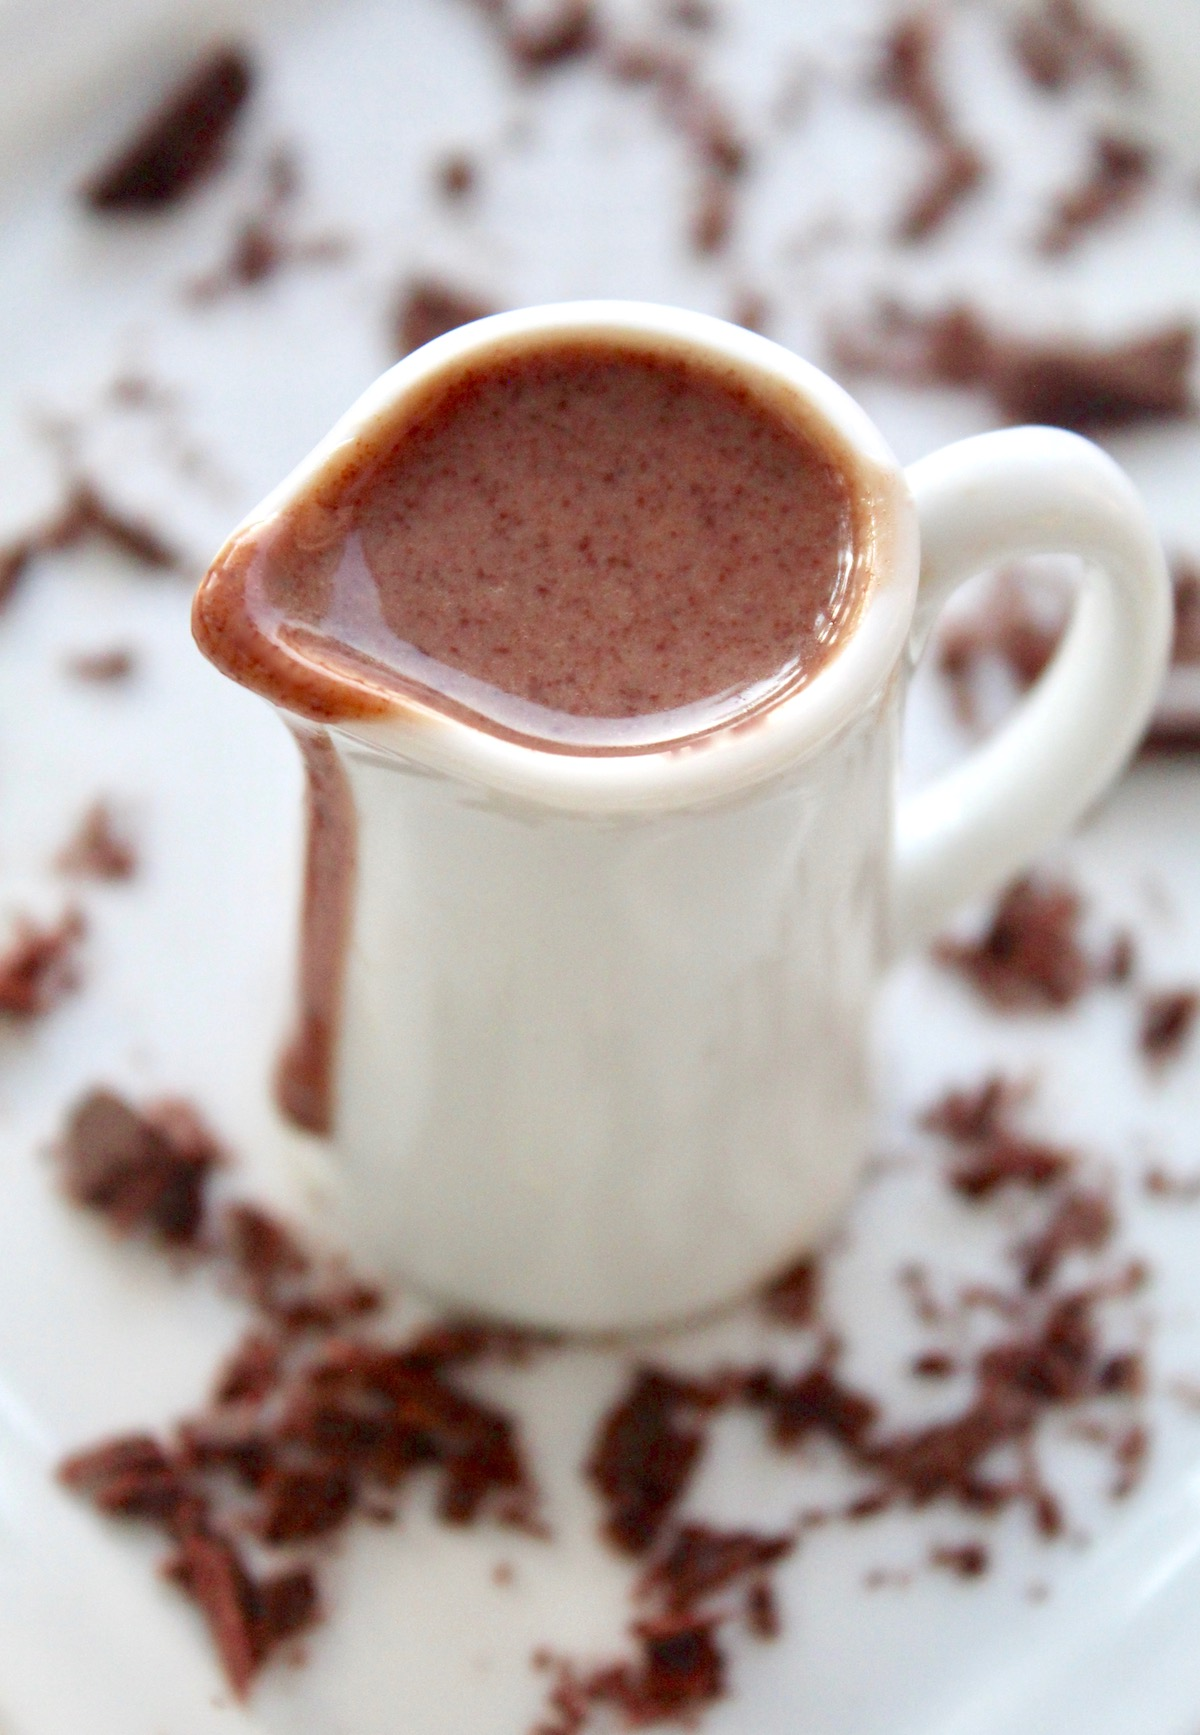 Chocolate dessert sauce dripping on the side of a white pitcher